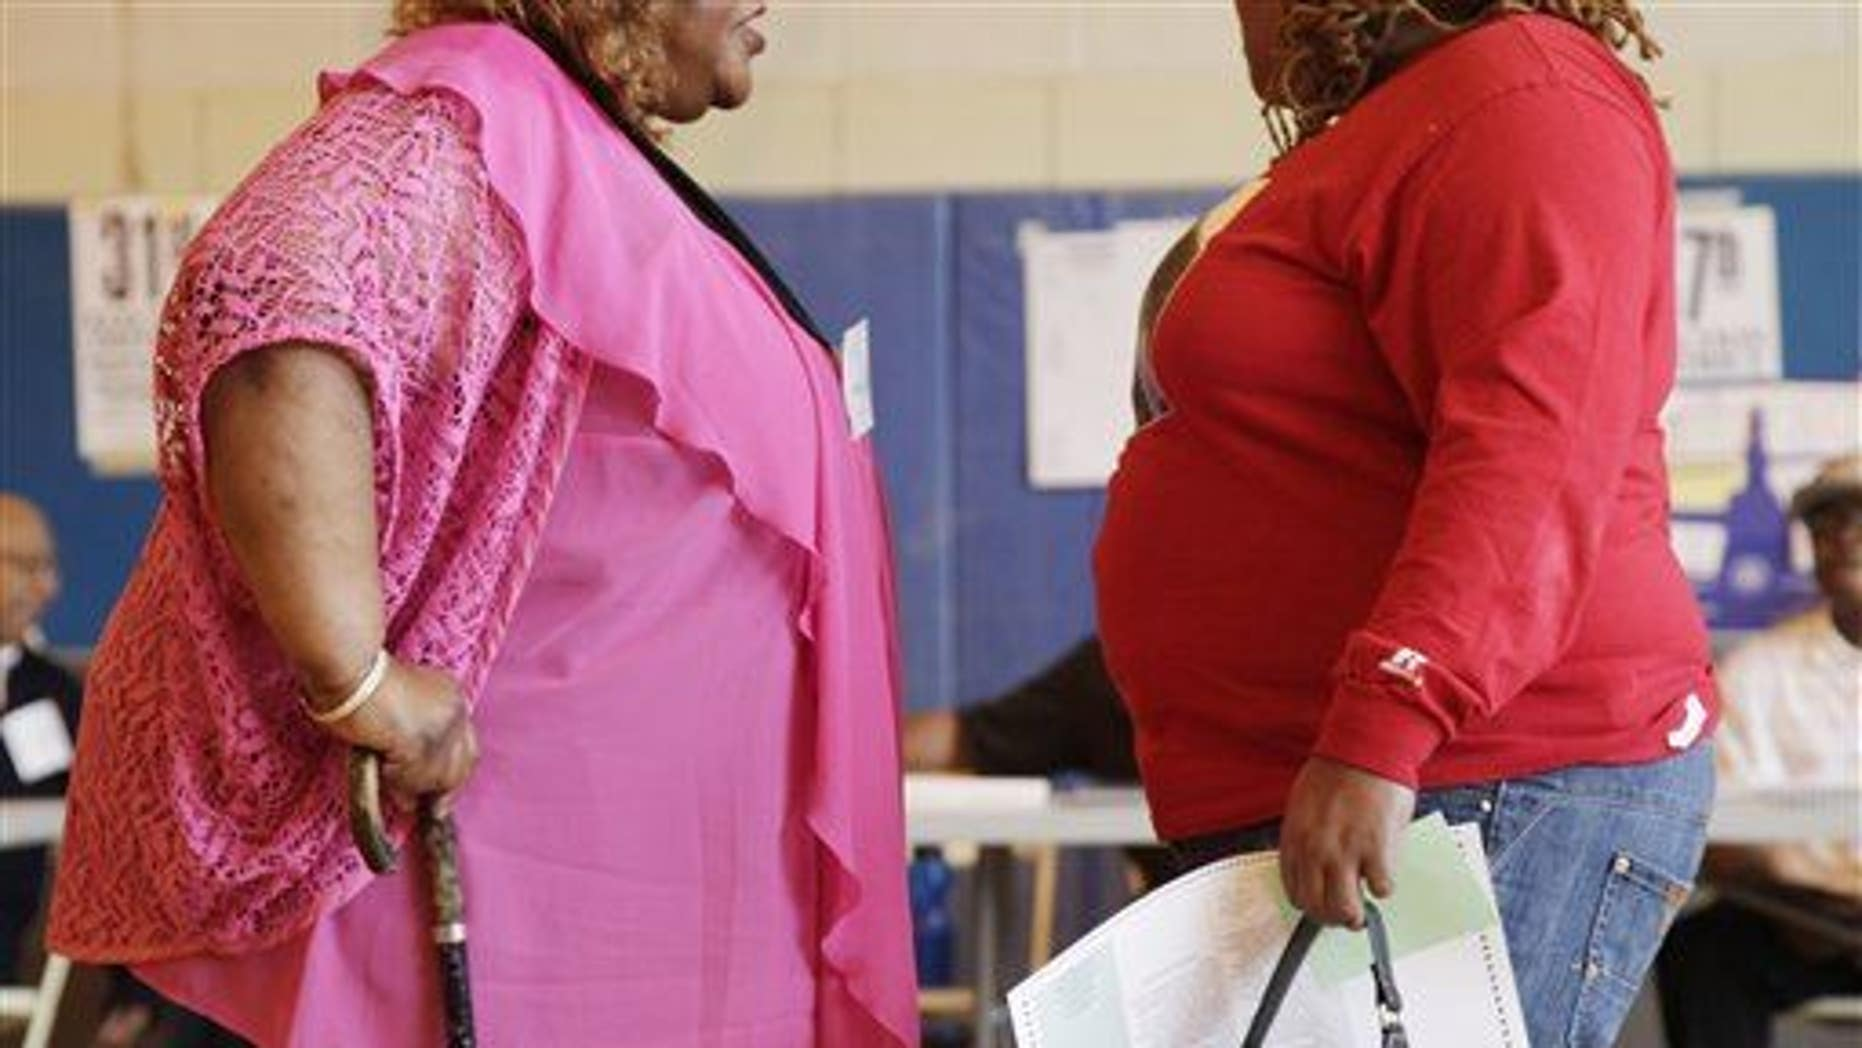 Women may not fully benefit from obesity medication, says study.